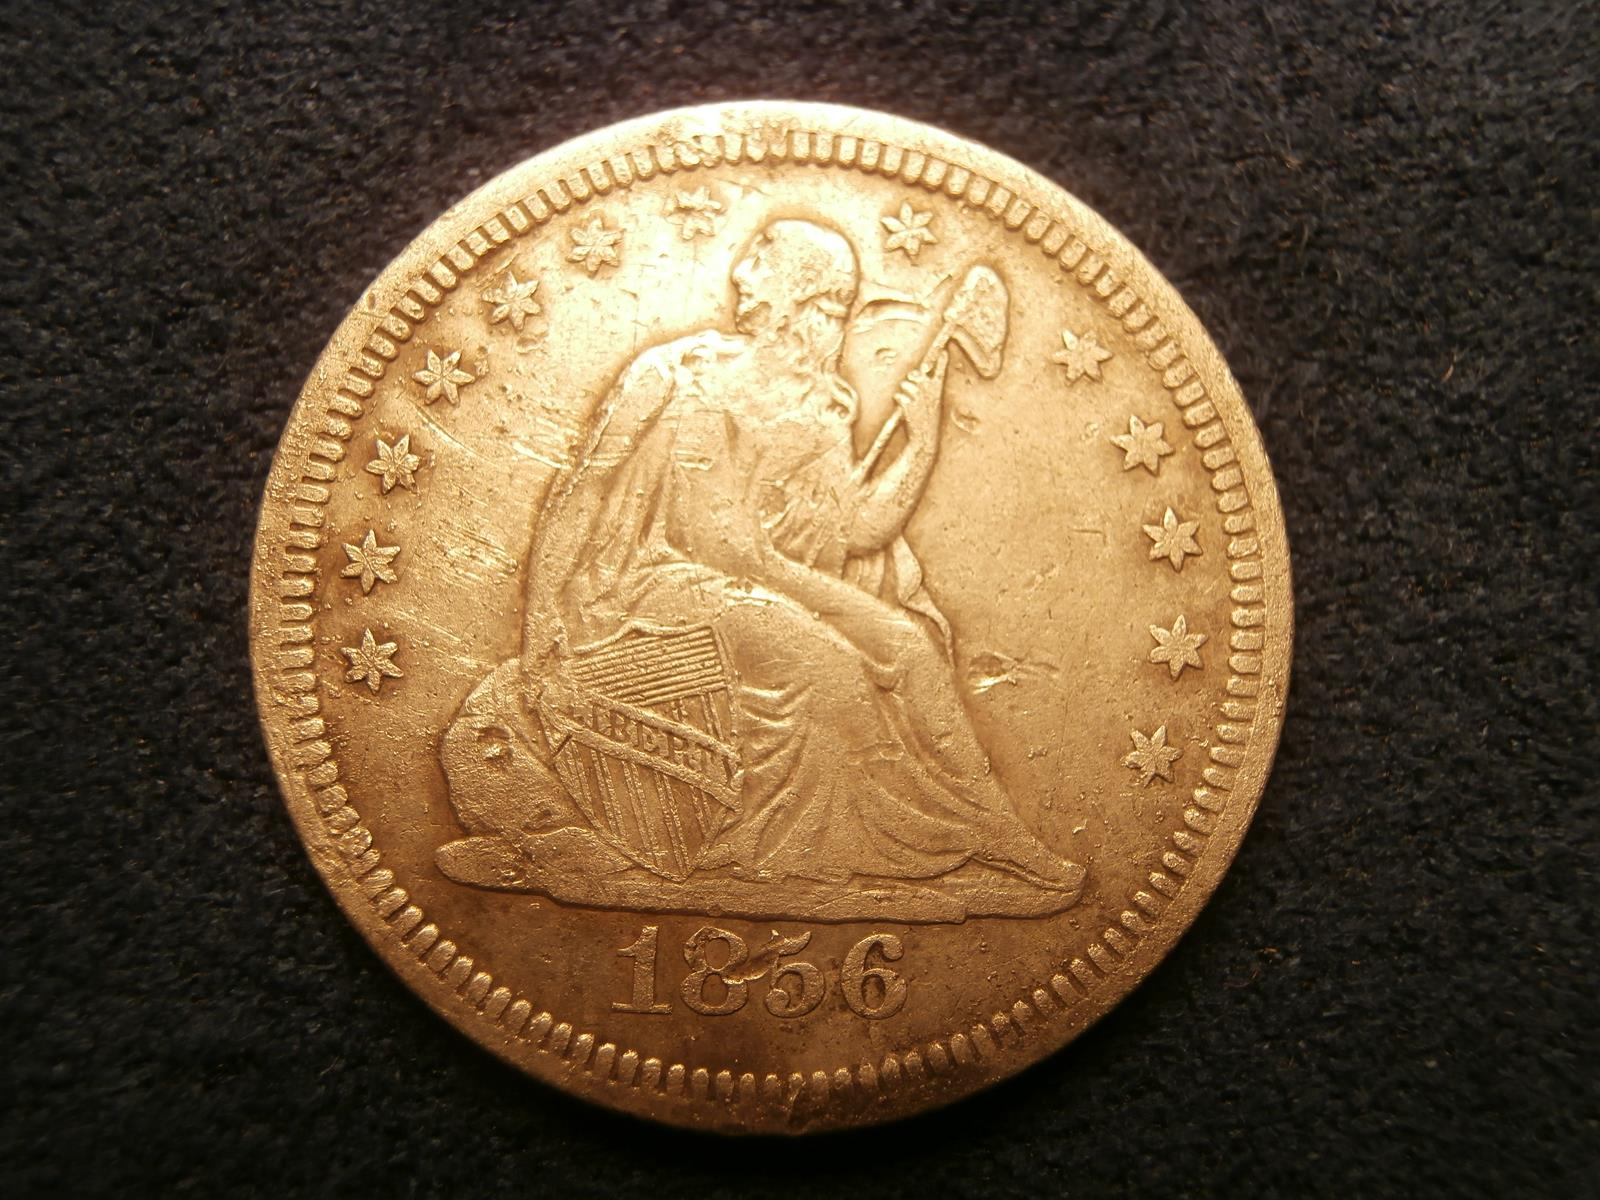 Field Tests Blog Fun Metal Detector To Findcoins At The Beach Obverse View Of An 1856 Liberty Seated Quarter This Was Unexpected